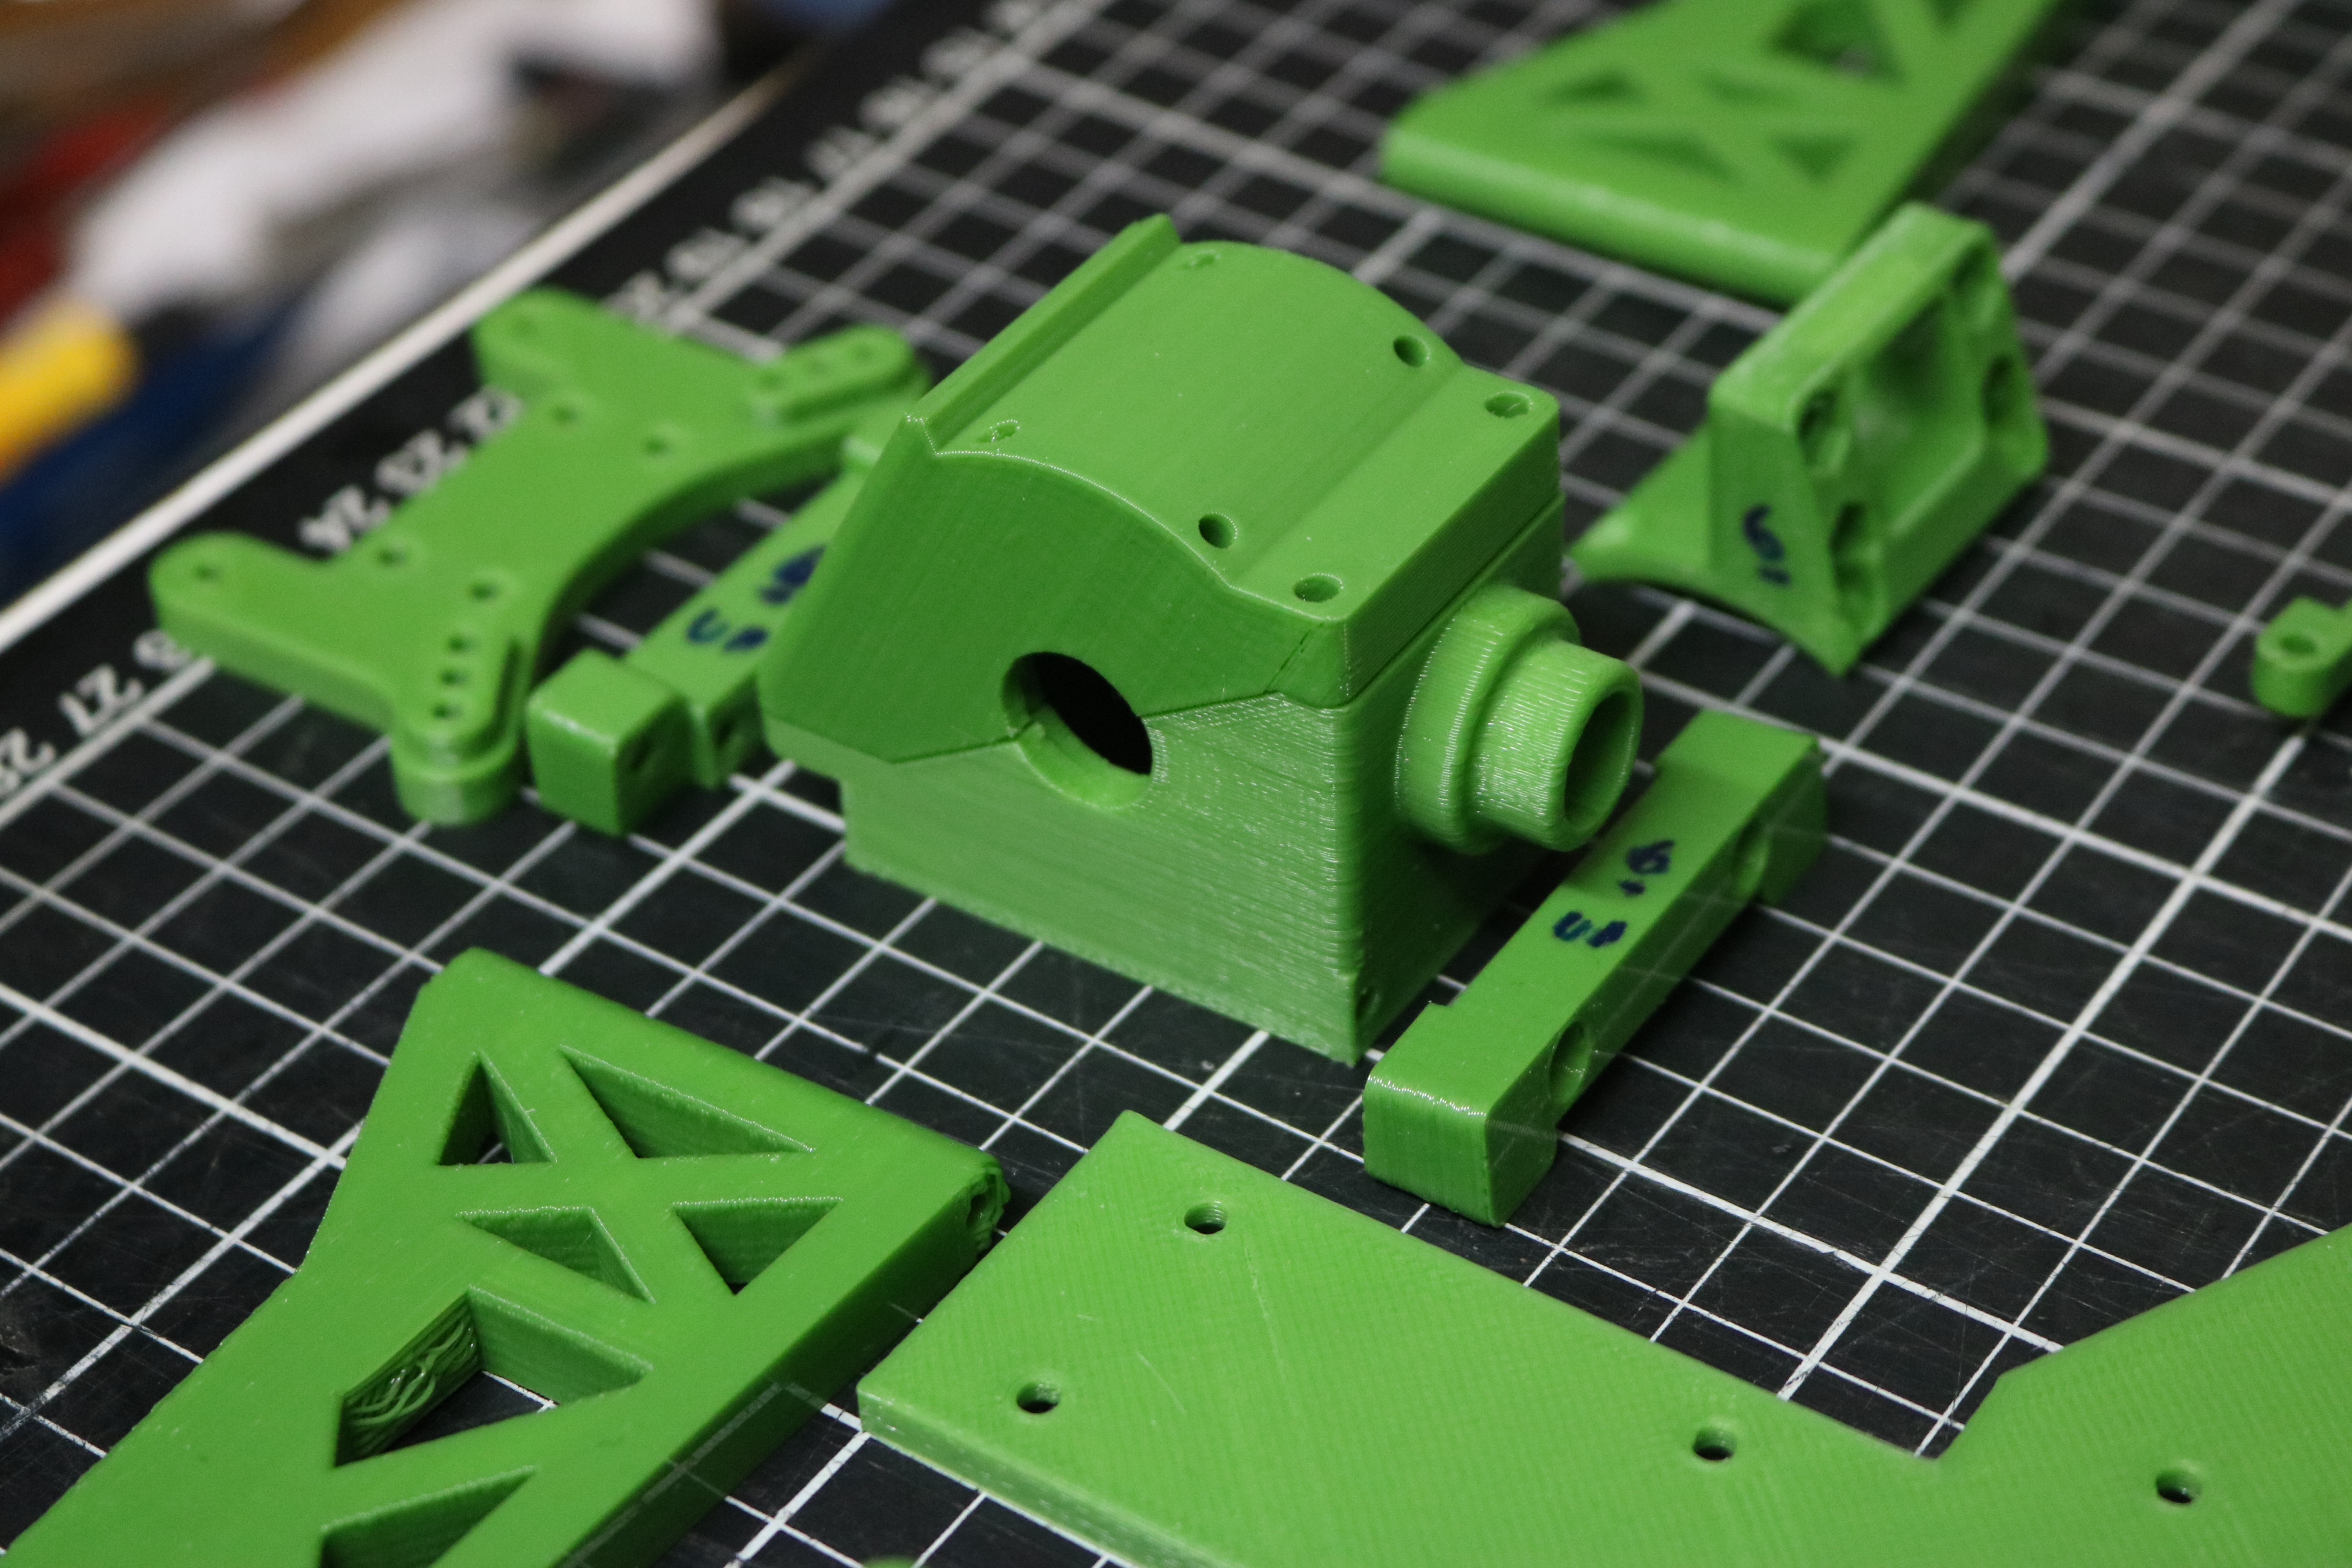 Some printed parts